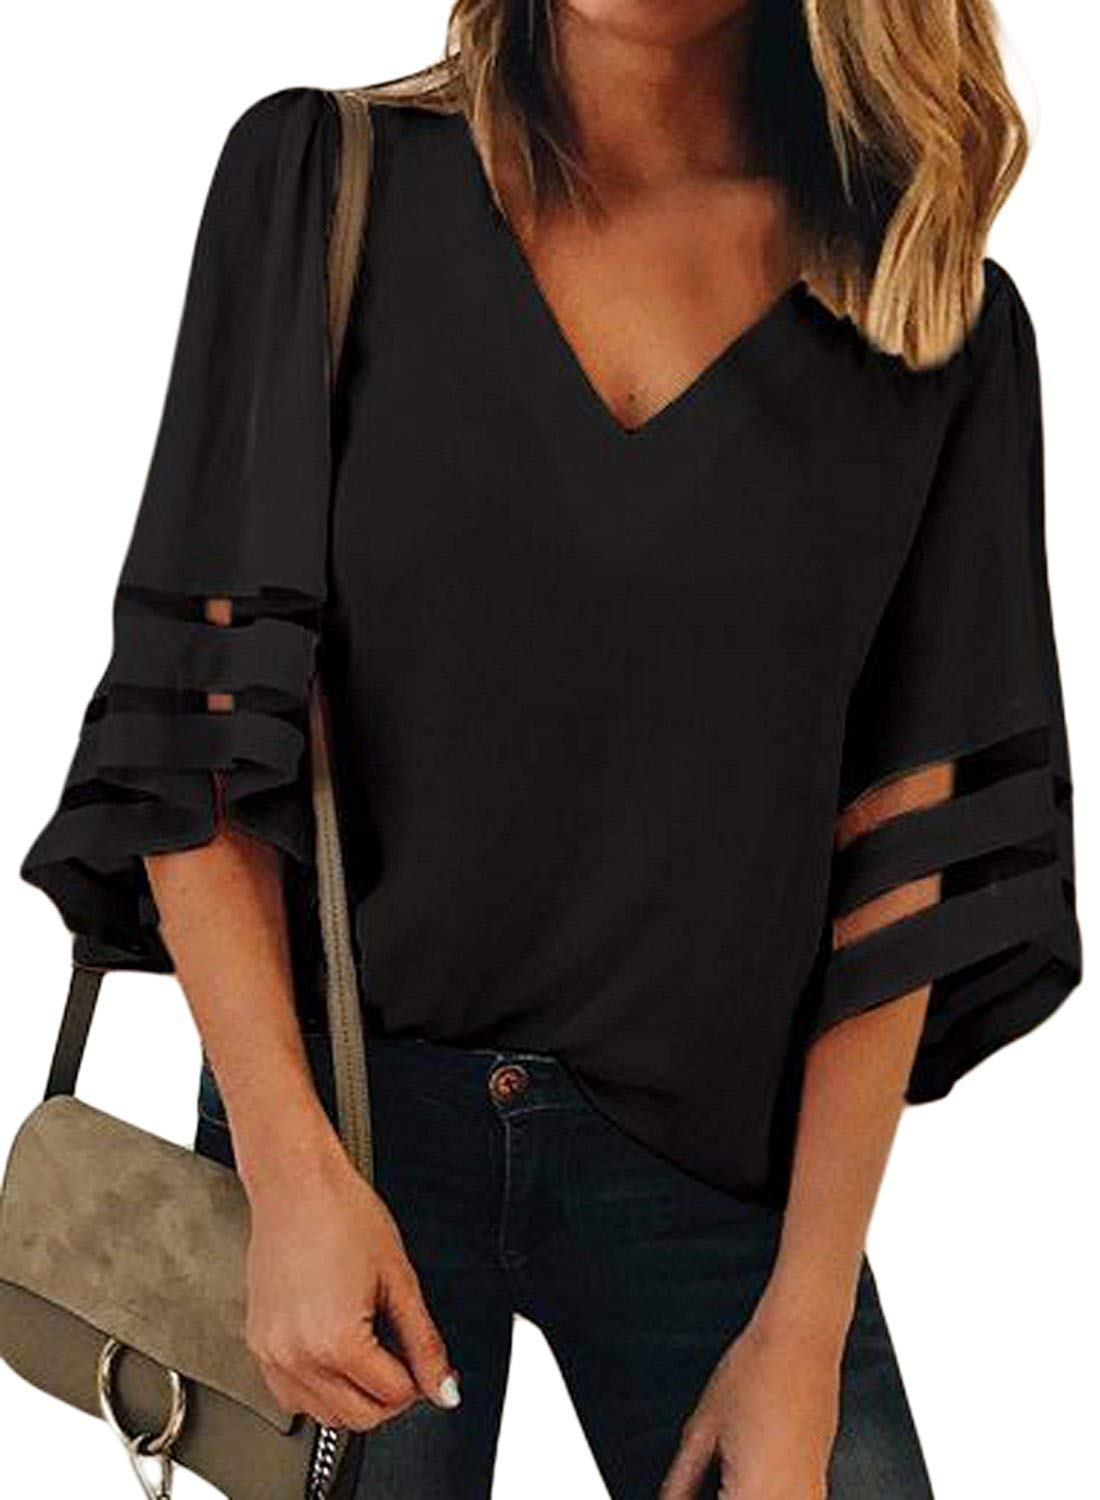 Charlotte Womens 3/4 Bell Sleeve V Neck Lace Patchwork Blouse Casual Loose Shirt Tops Flare Sleeve Tops Bouse (L, Black)